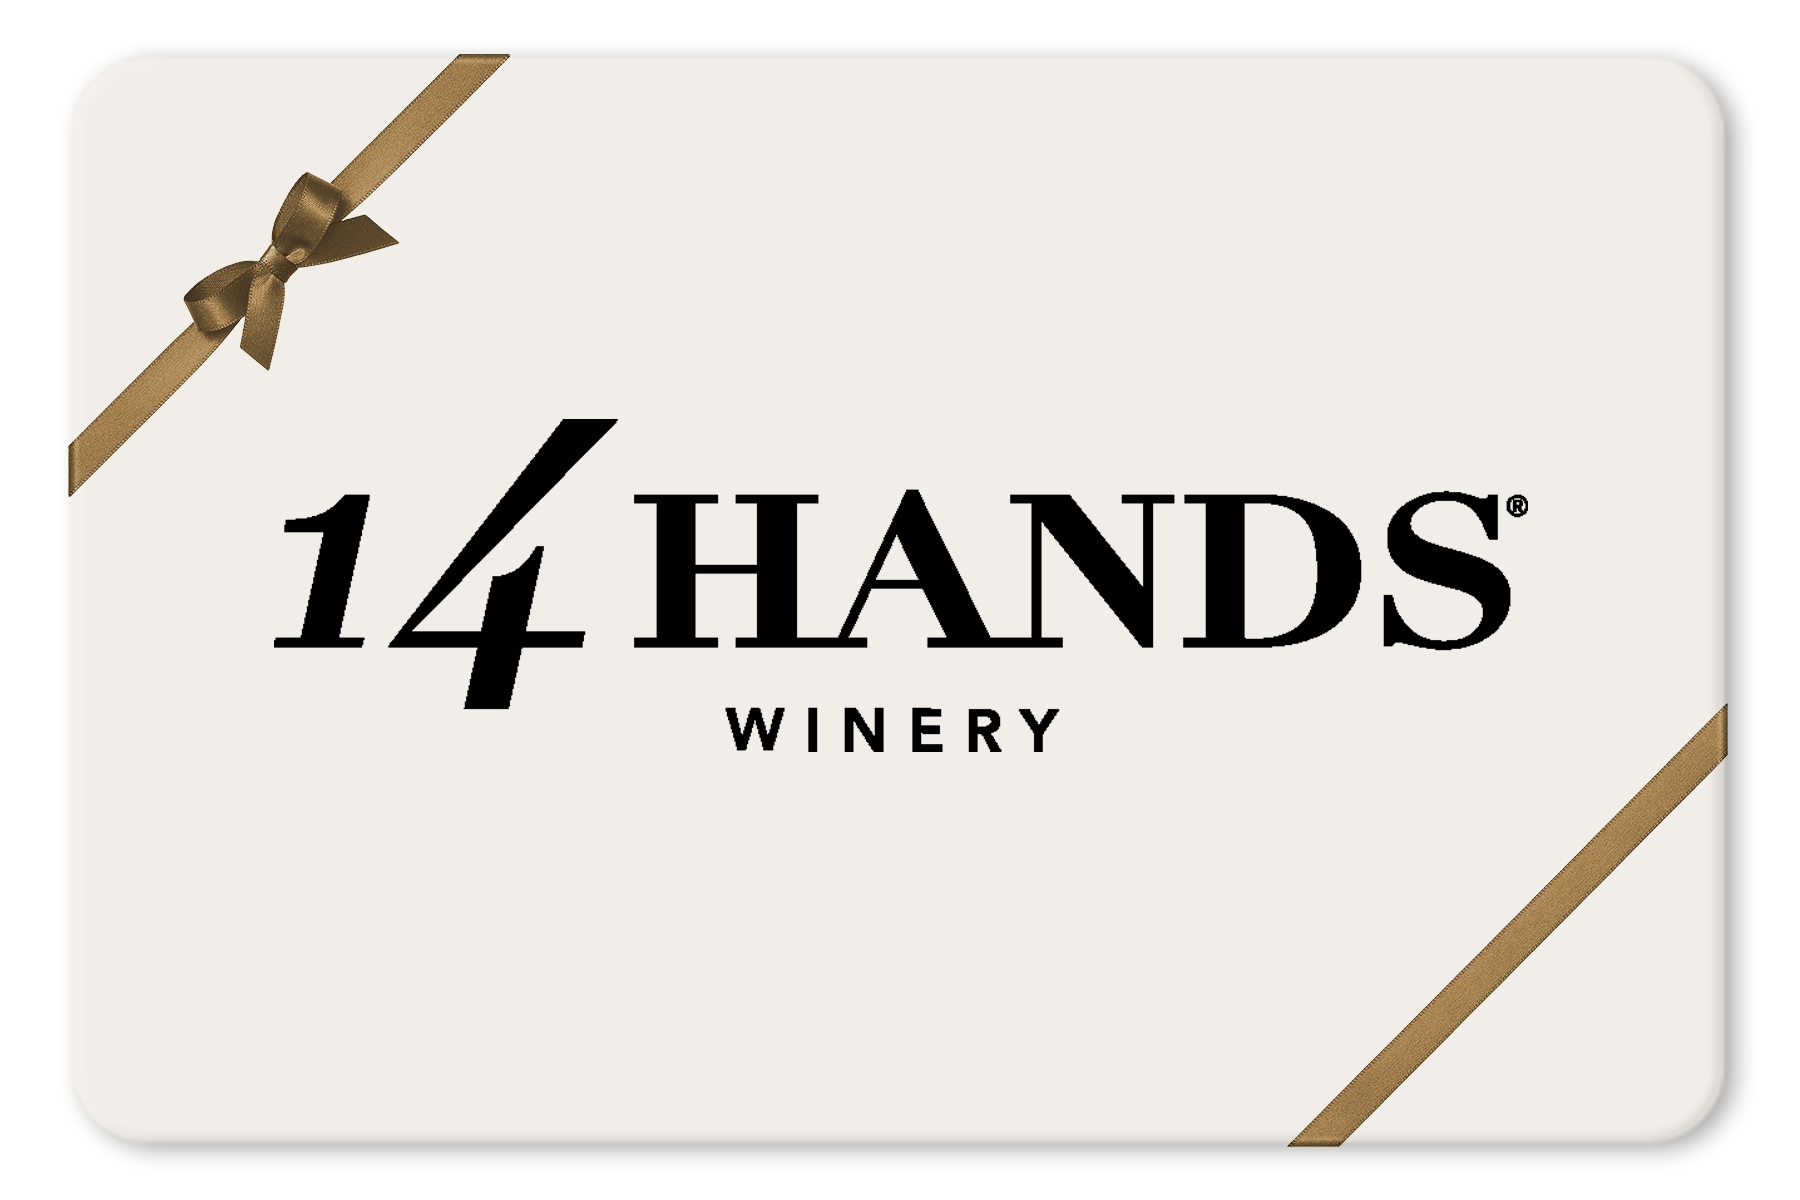 14 Hands Winery Gift Card